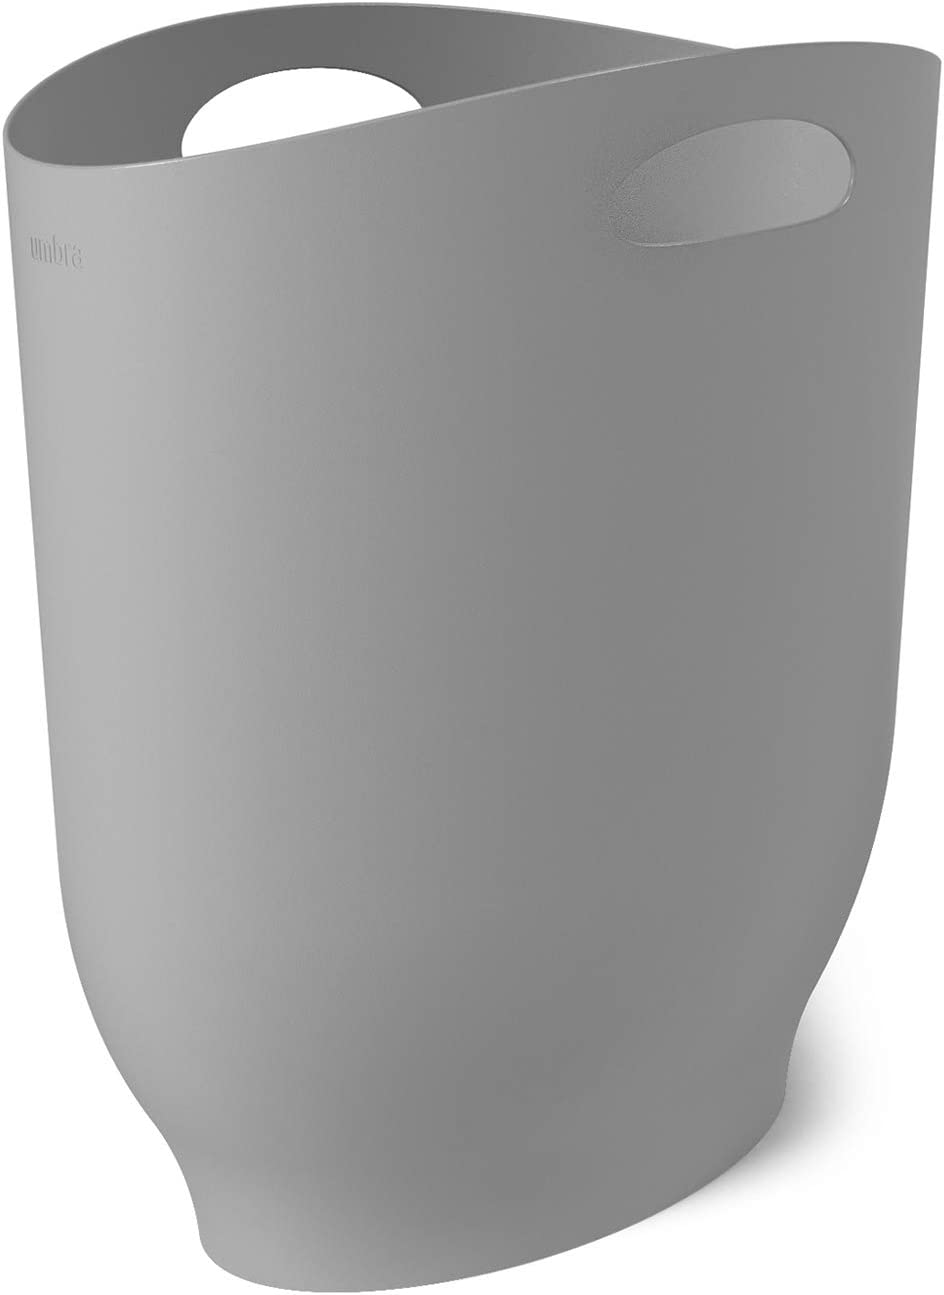 Umbra 1012181-918 , Grey Harlo Sleek & Stylish Bathroom Trash, Small Garbage Can Wastebasket for Narrow Spaces at Home or Office, 2.4 Gallon Capacity,7 x 13 x 12